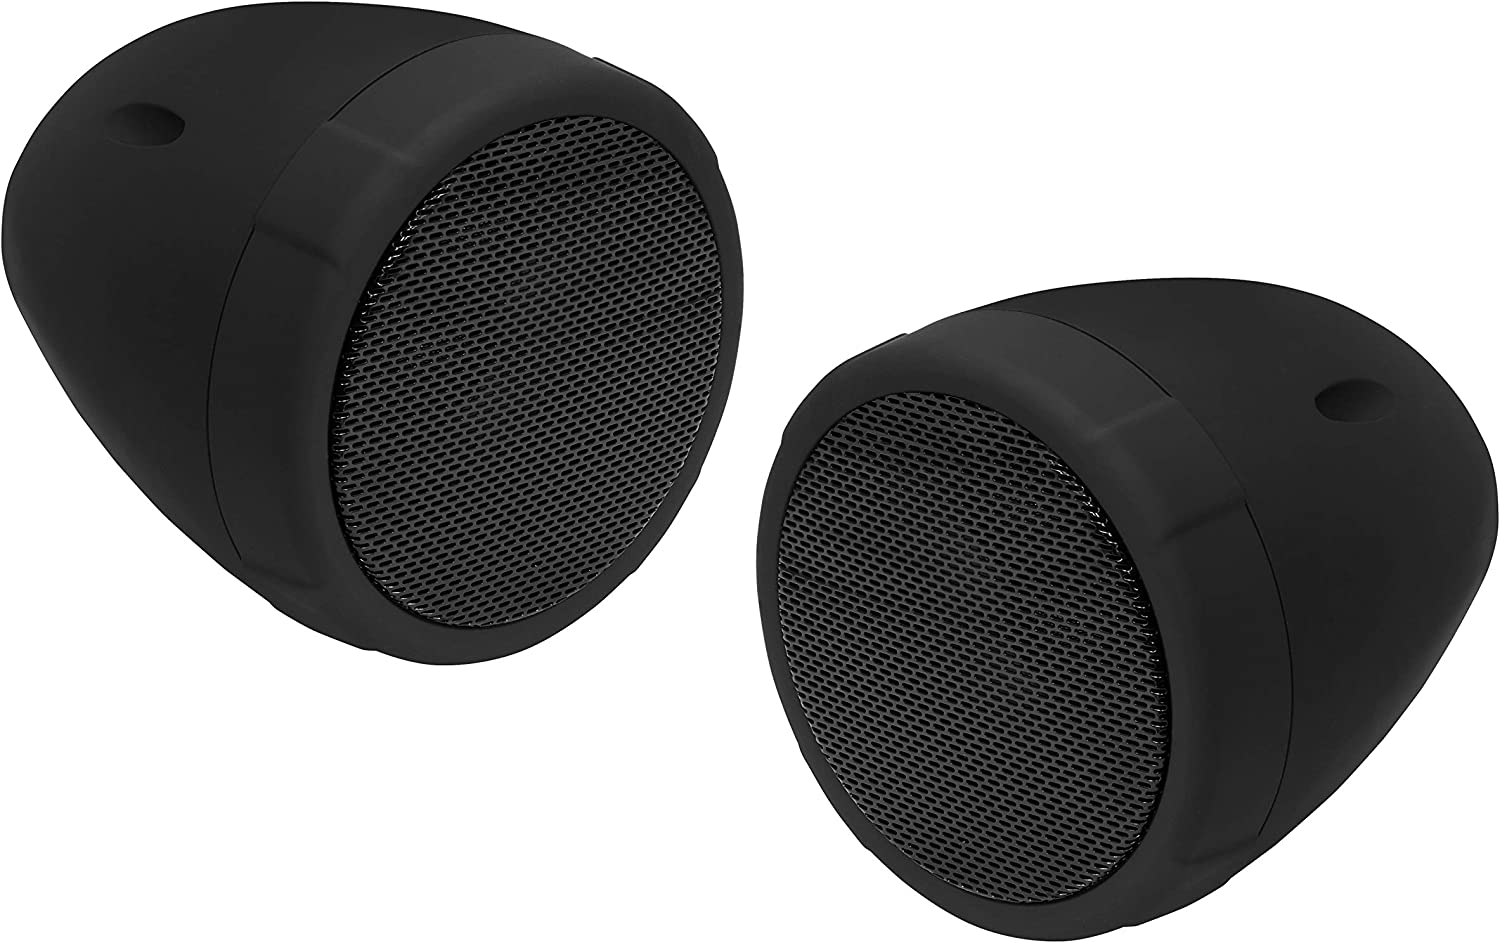 BOSS Audio Systems MCBK425BA Motorcycle Speaker System - 2 3 Inch Weatherproof Speakers with Built-in Amplifier,1 Volume Control, Great for Use with ATVs Motorcycles and All 12 Volt Vehicles